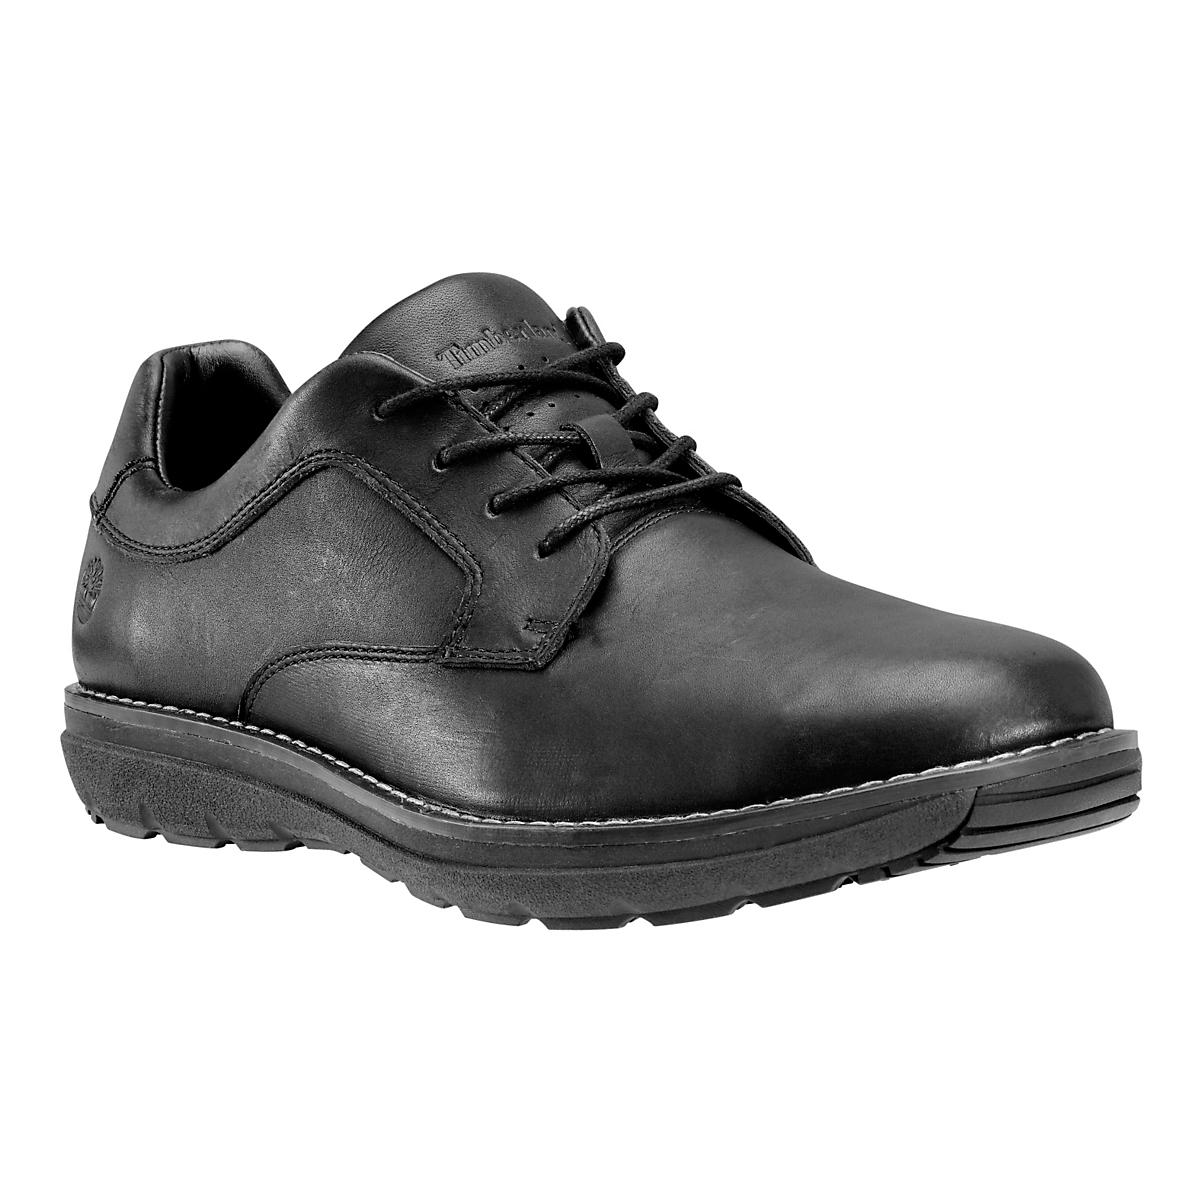 Men's Timberland�Barrett Park Oxford